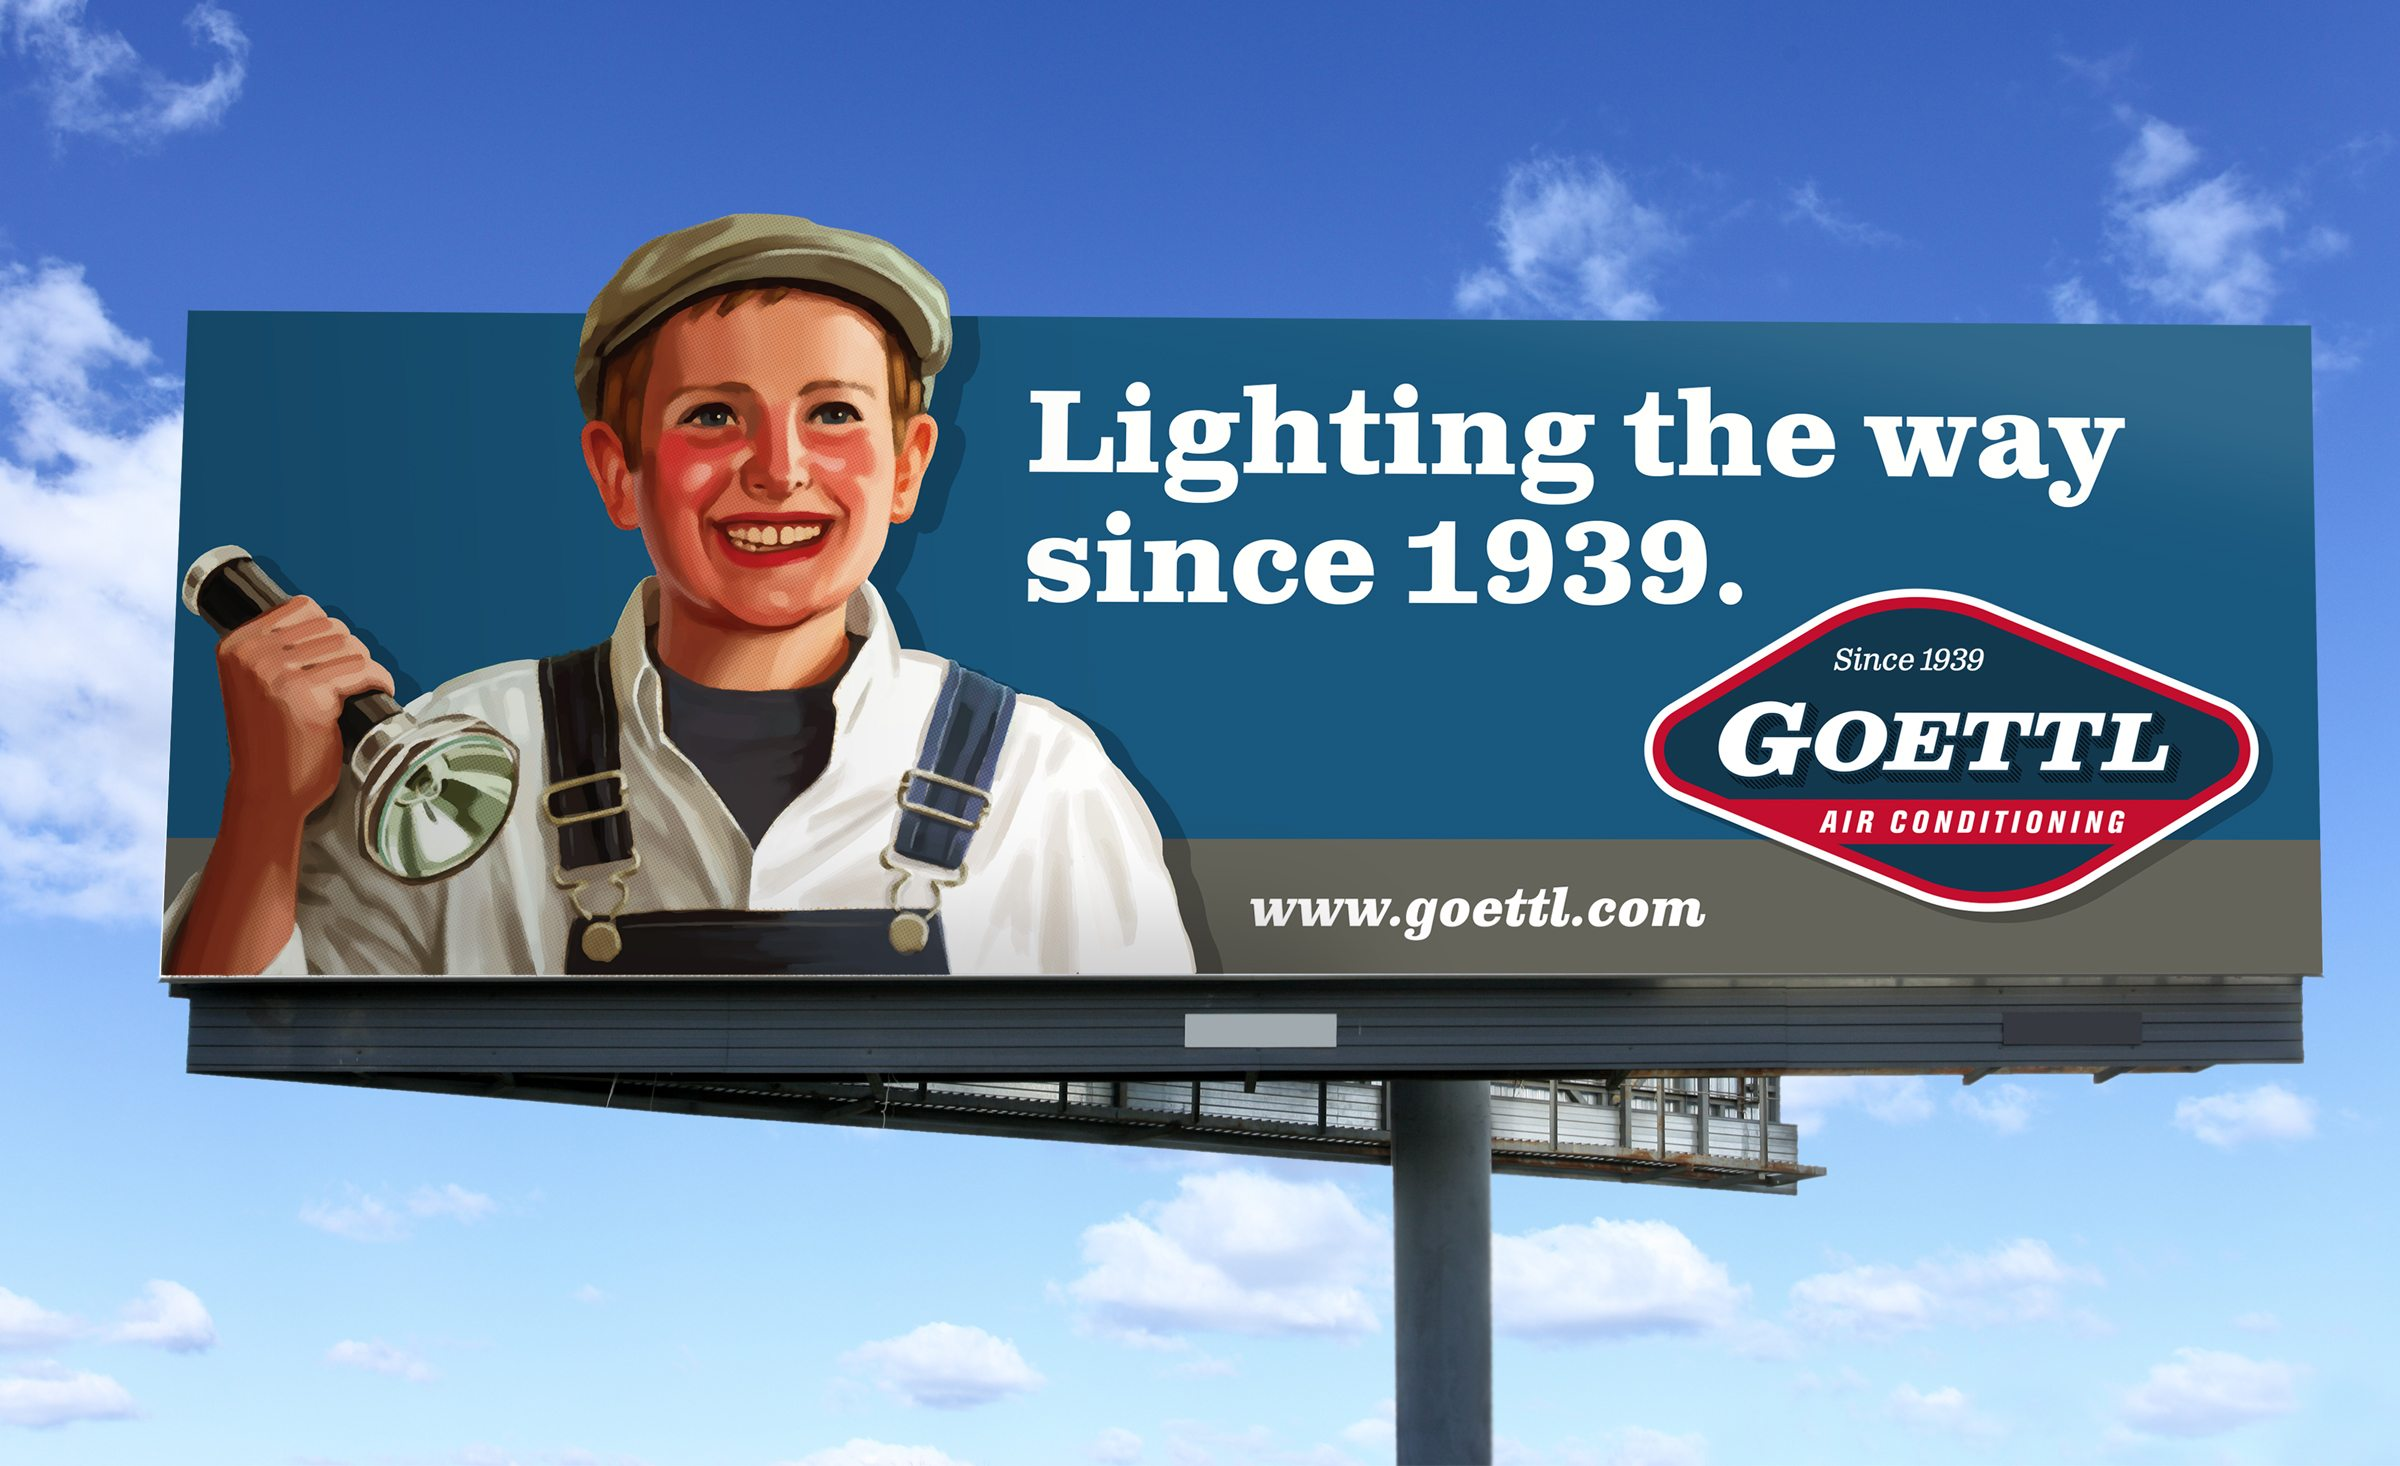 Billboard design for Goettl Air Conditioning.